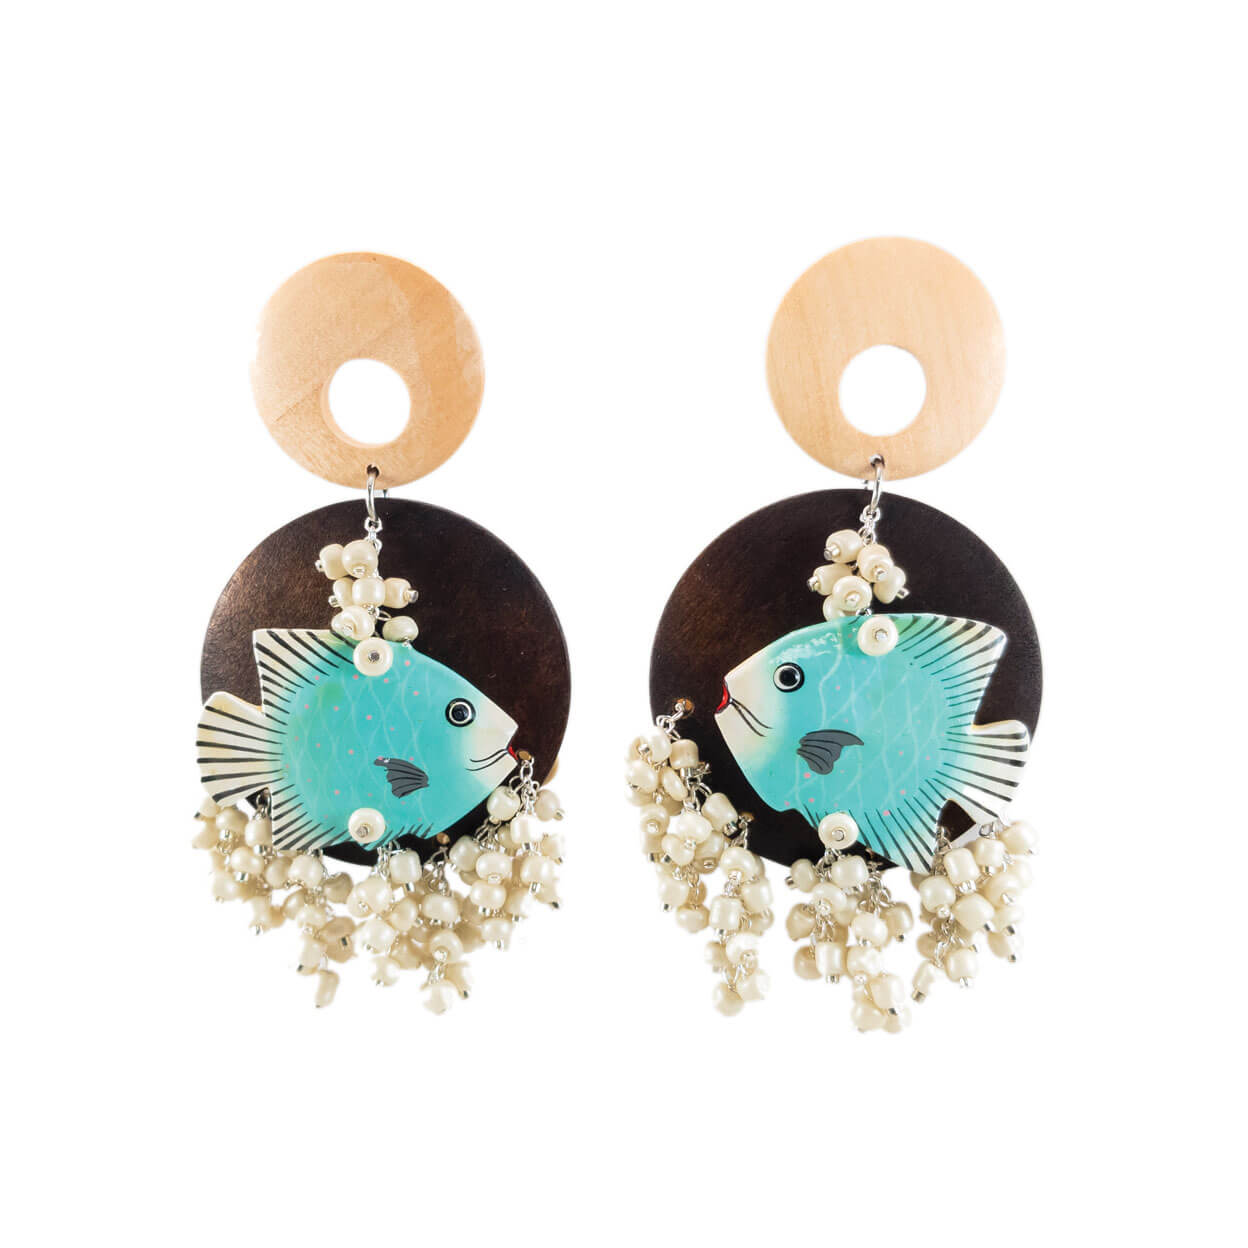 tropical style charm earrings with vintage light blue fish on dark wood back drop circles, with chandelier style ivory bone beads hanging